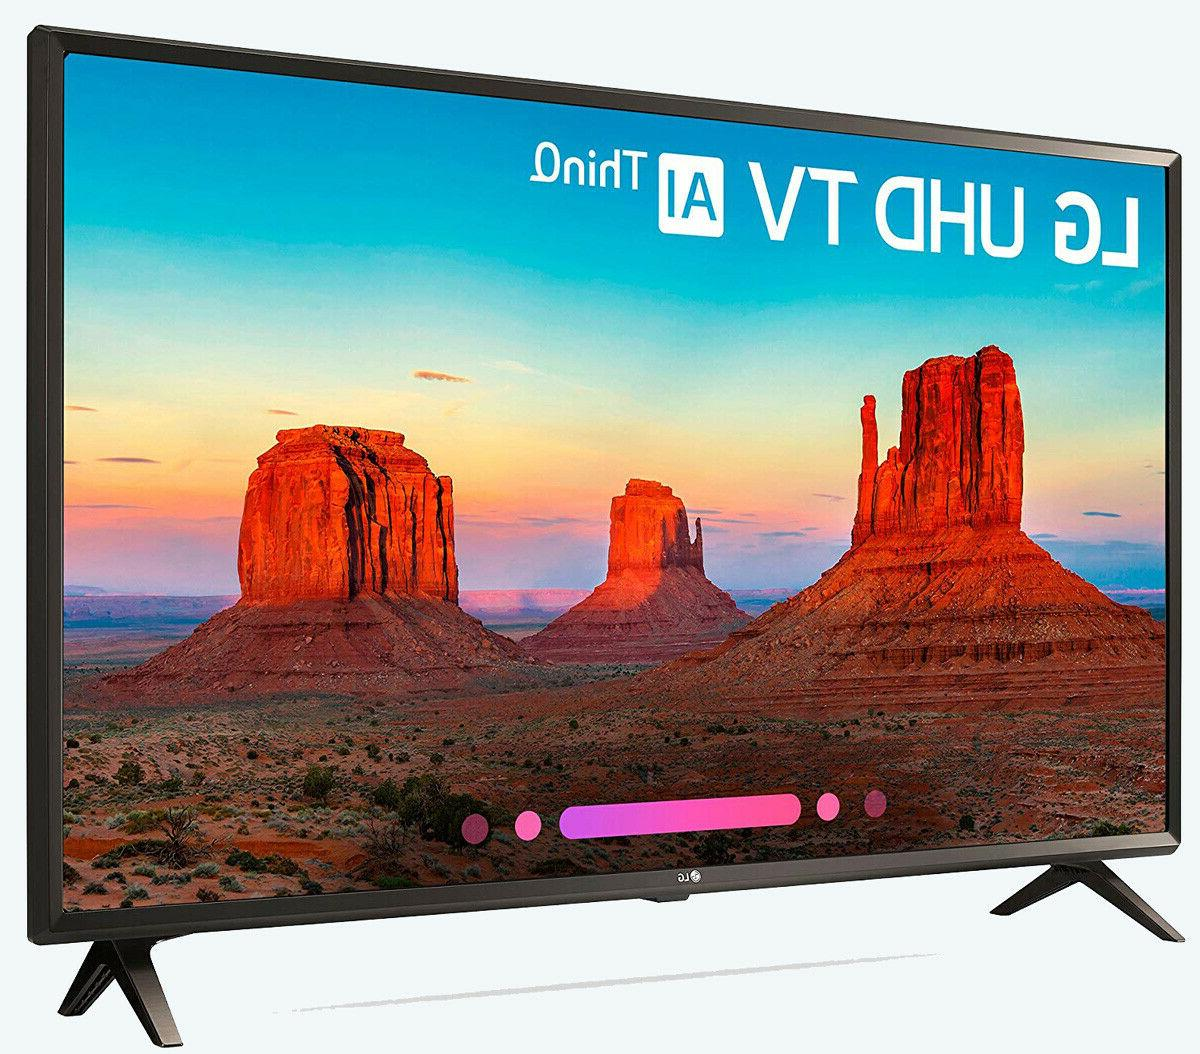 LG 43-Inch 4K HD Smart LED